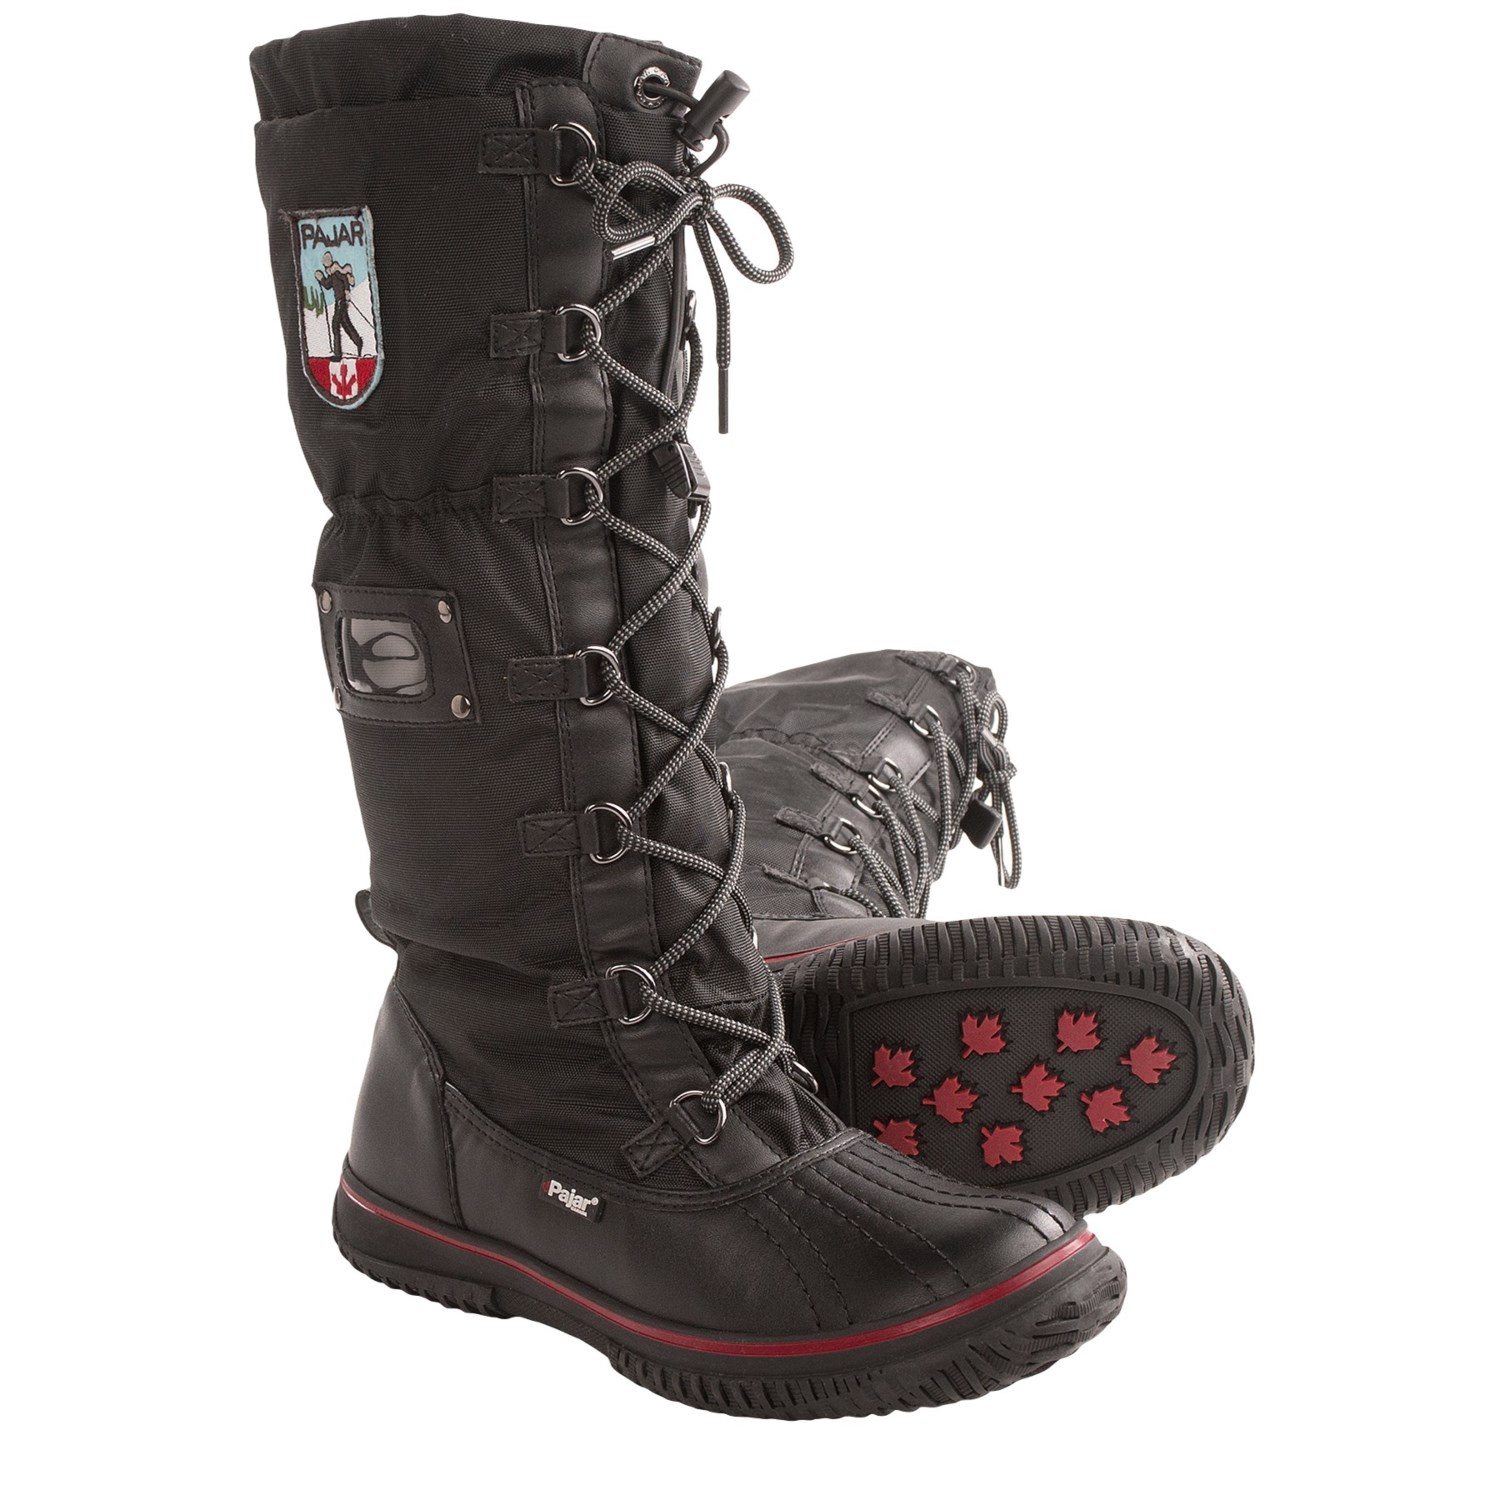 Pajar Women;s Greenland Black Snow Boots | Homewood Mountain Ski ...